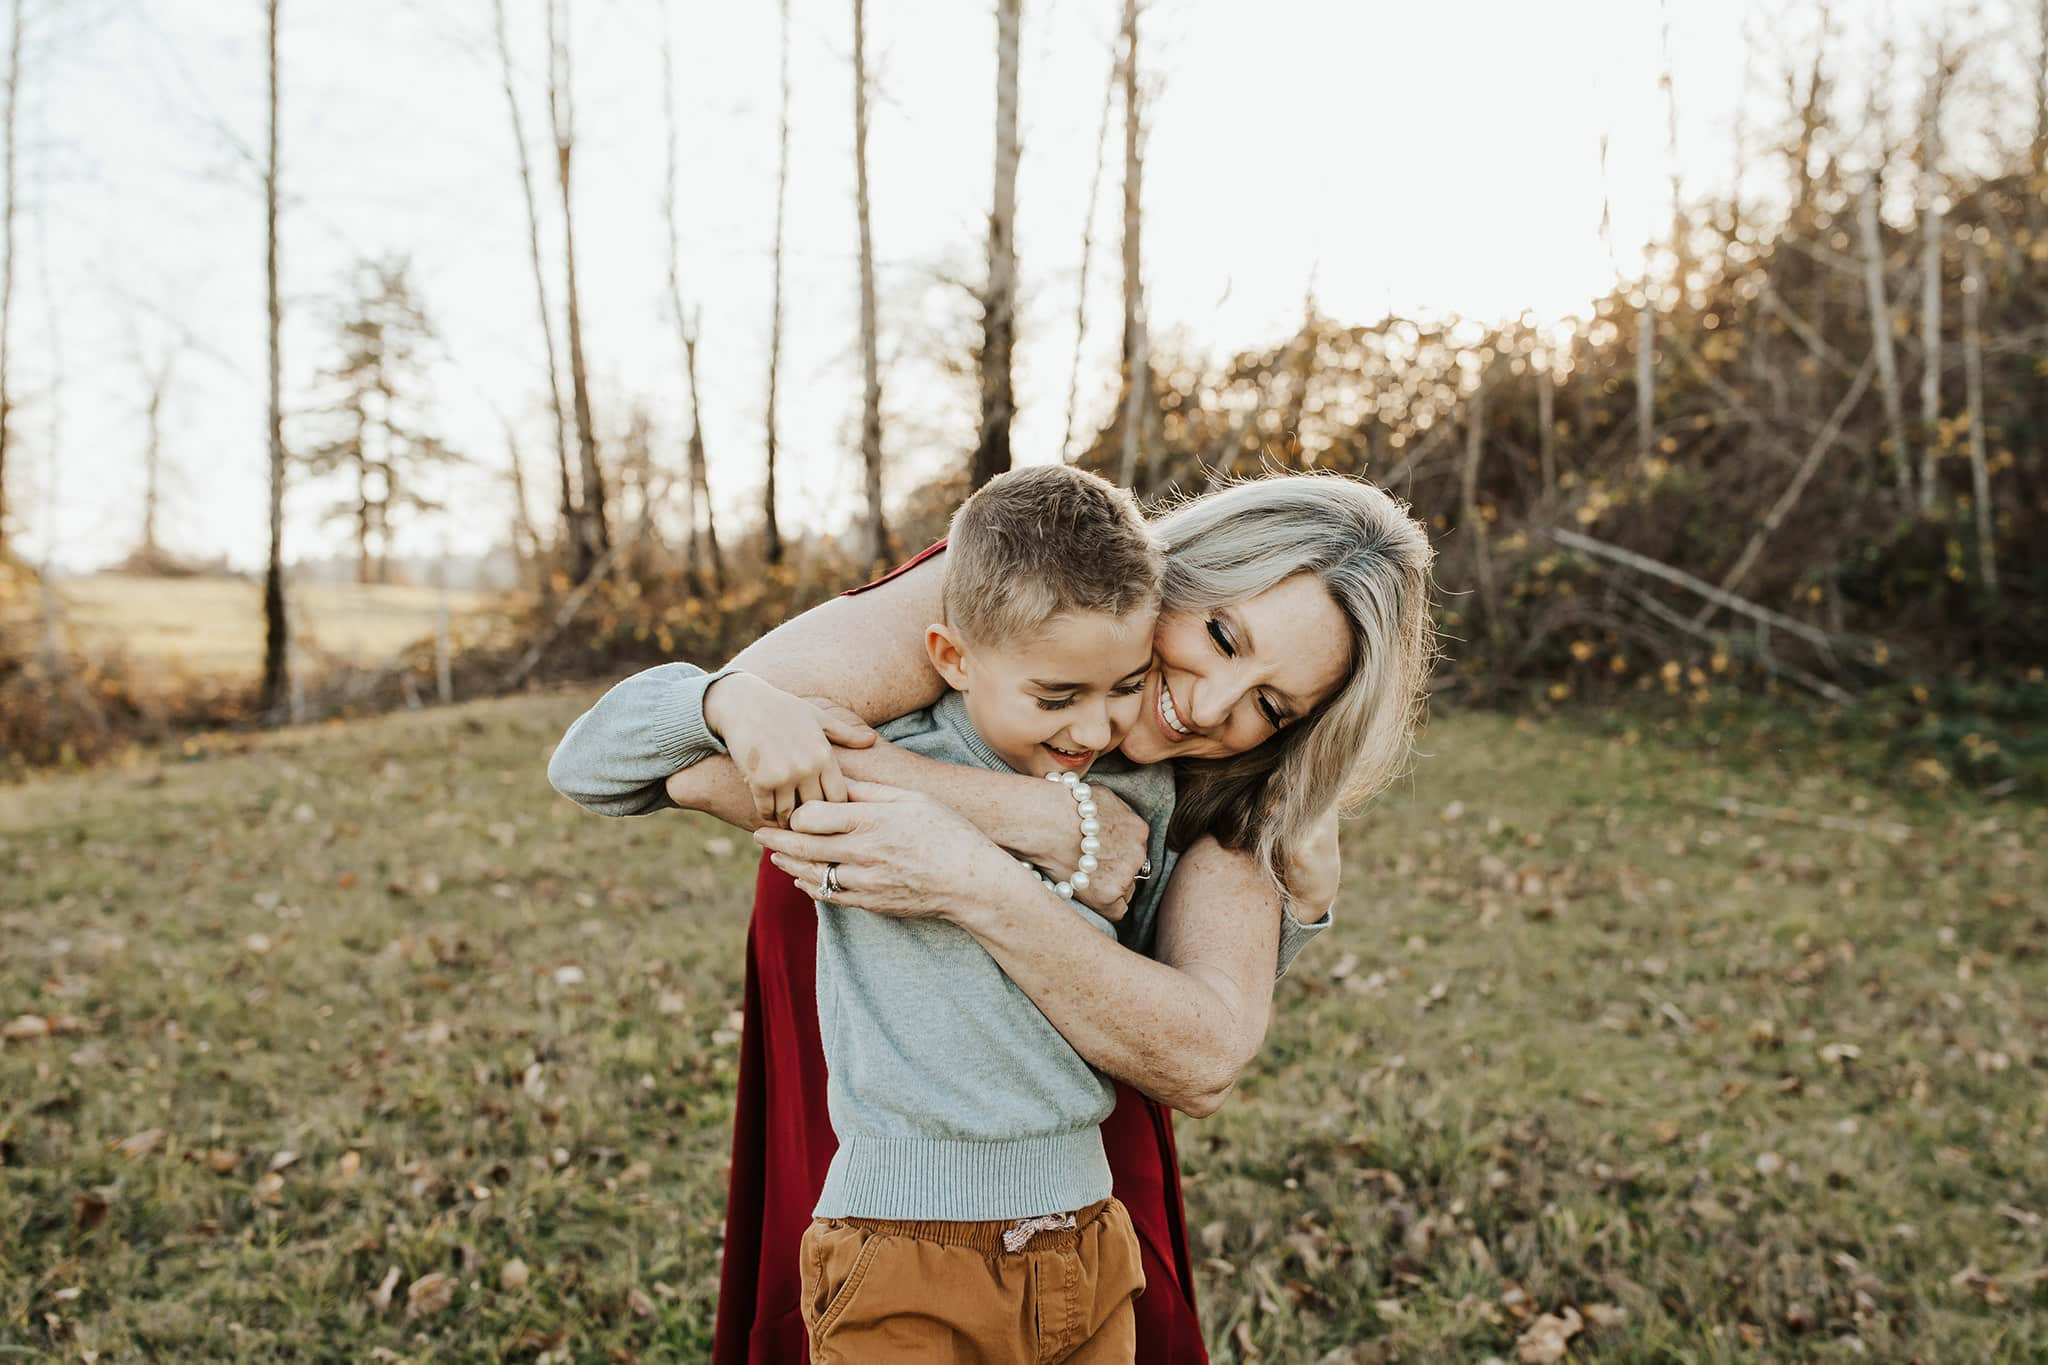 mom cuddling son in a candid moment